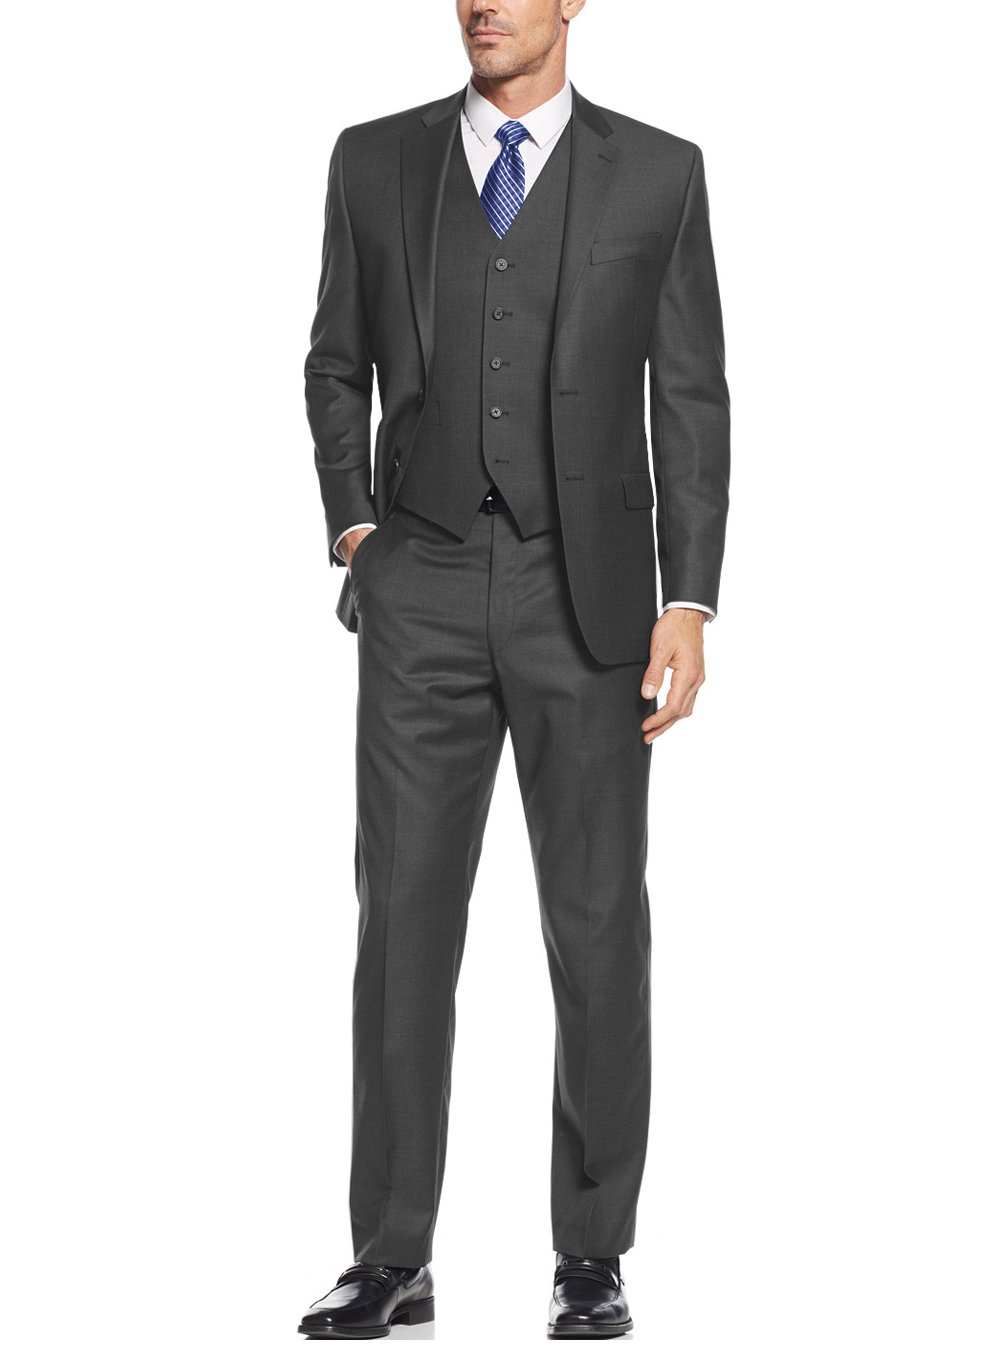 Salvatore Exte Men's Suit 3-Piece Two Button Blazer Jacket Flat Front Pants (40 Regular US / 50R EU / W 34'', Charcoal) by Salvatore Exte